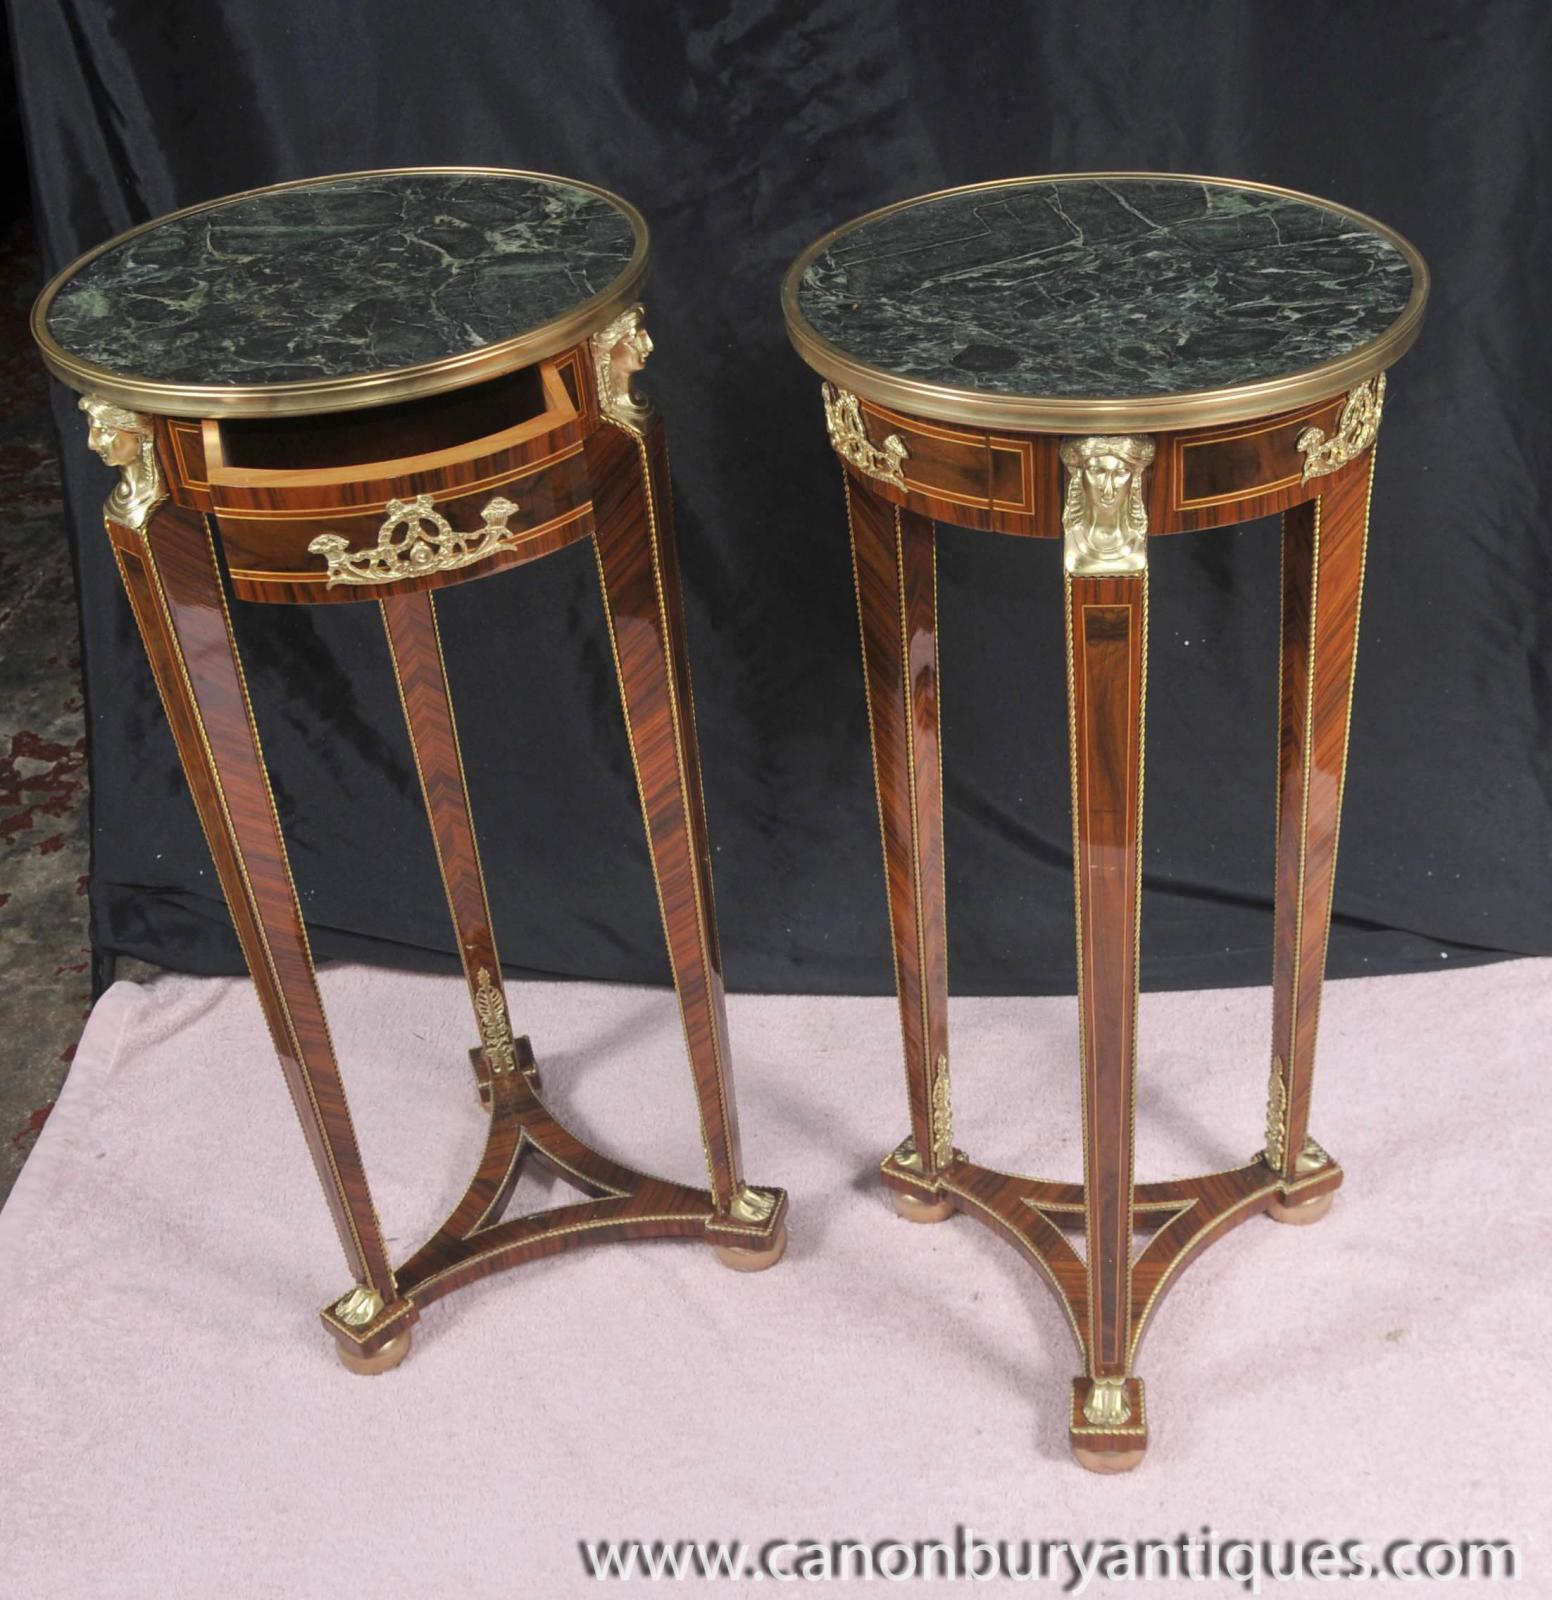 Details about Pair Tall Empire Pedestal Tables Stands Side Table